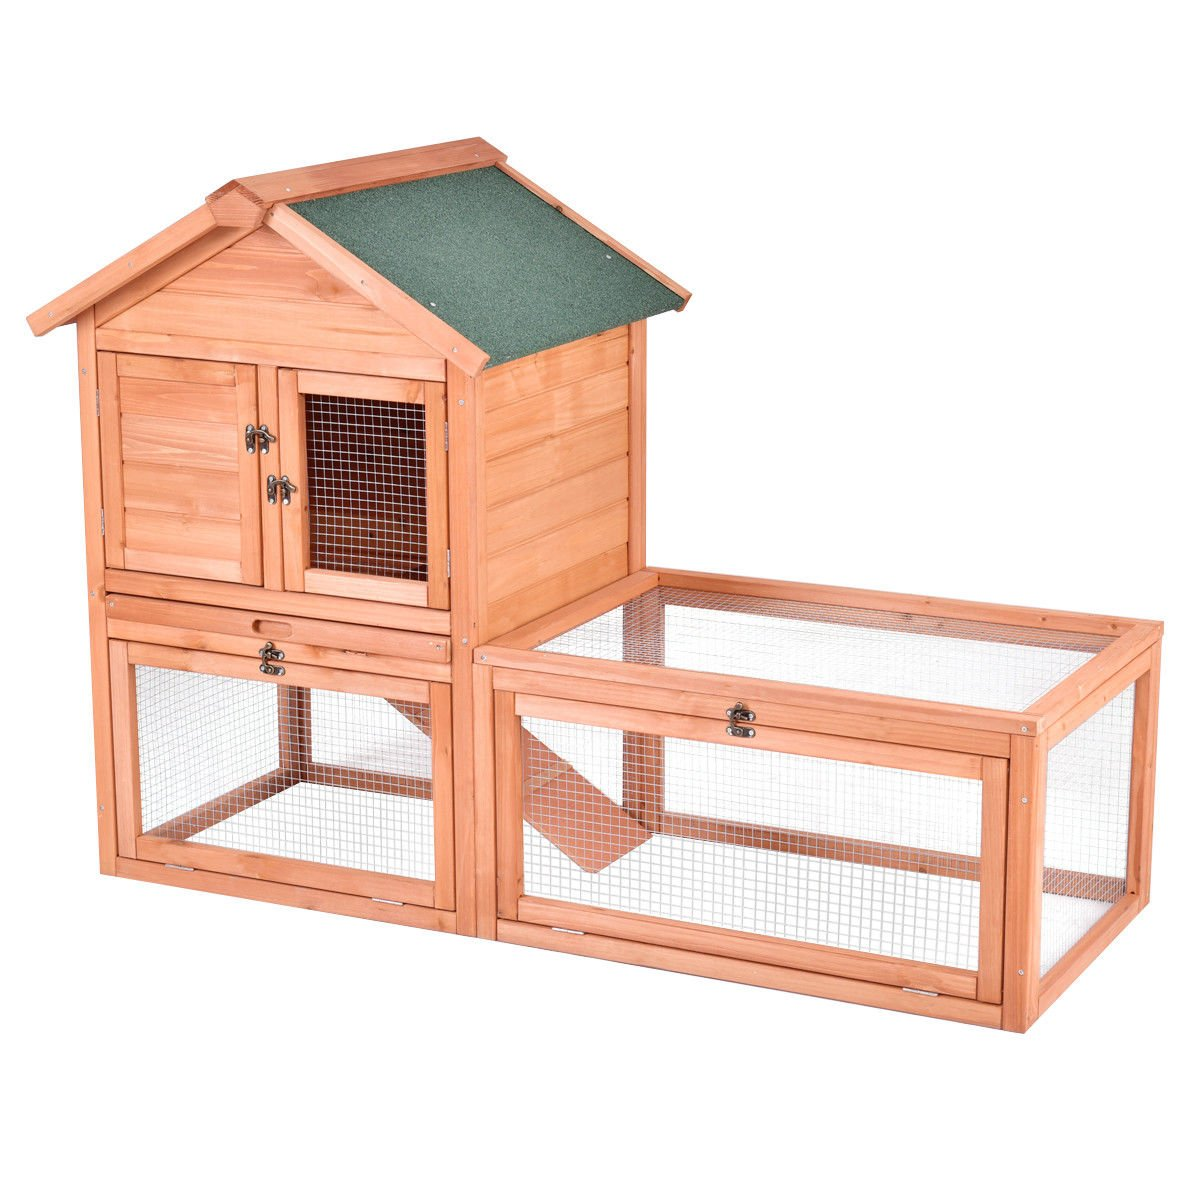 56'' Pet Supplies Wooden House Rabbit Hutch Chicken Coops Cage w Tray Run Outdoor